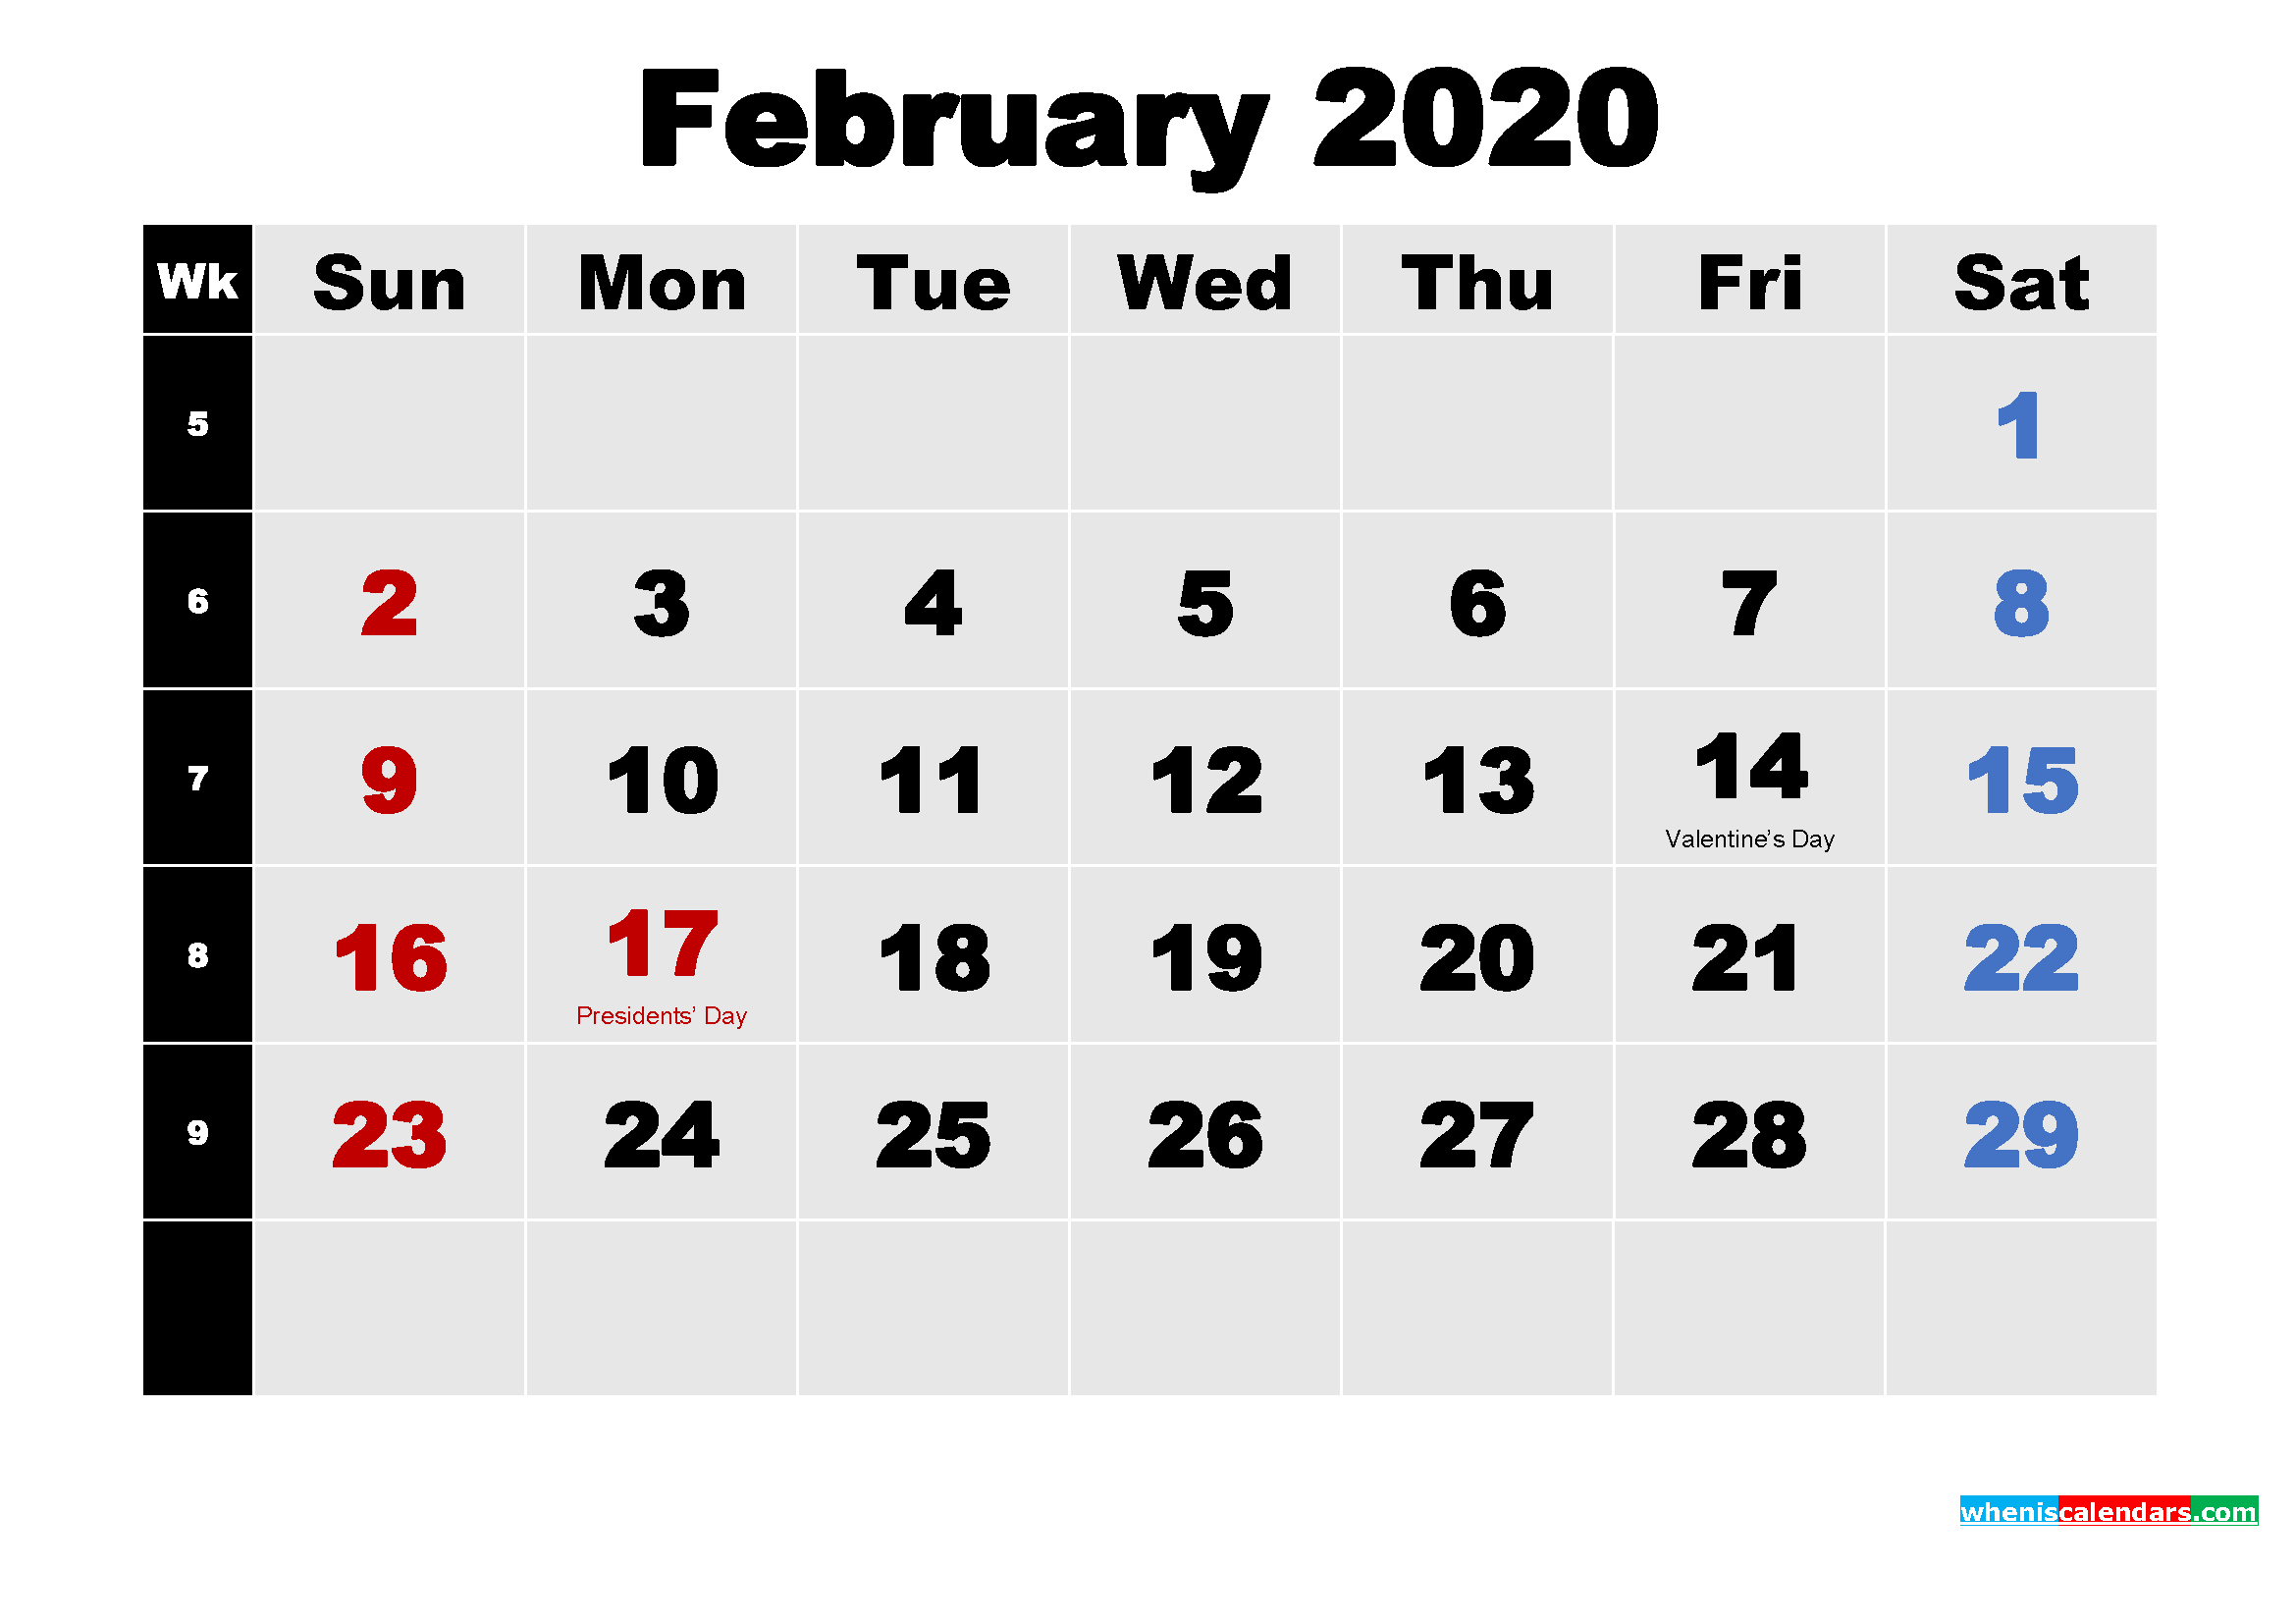 February 2020 Calendar With Holidays Wallpaper   Free